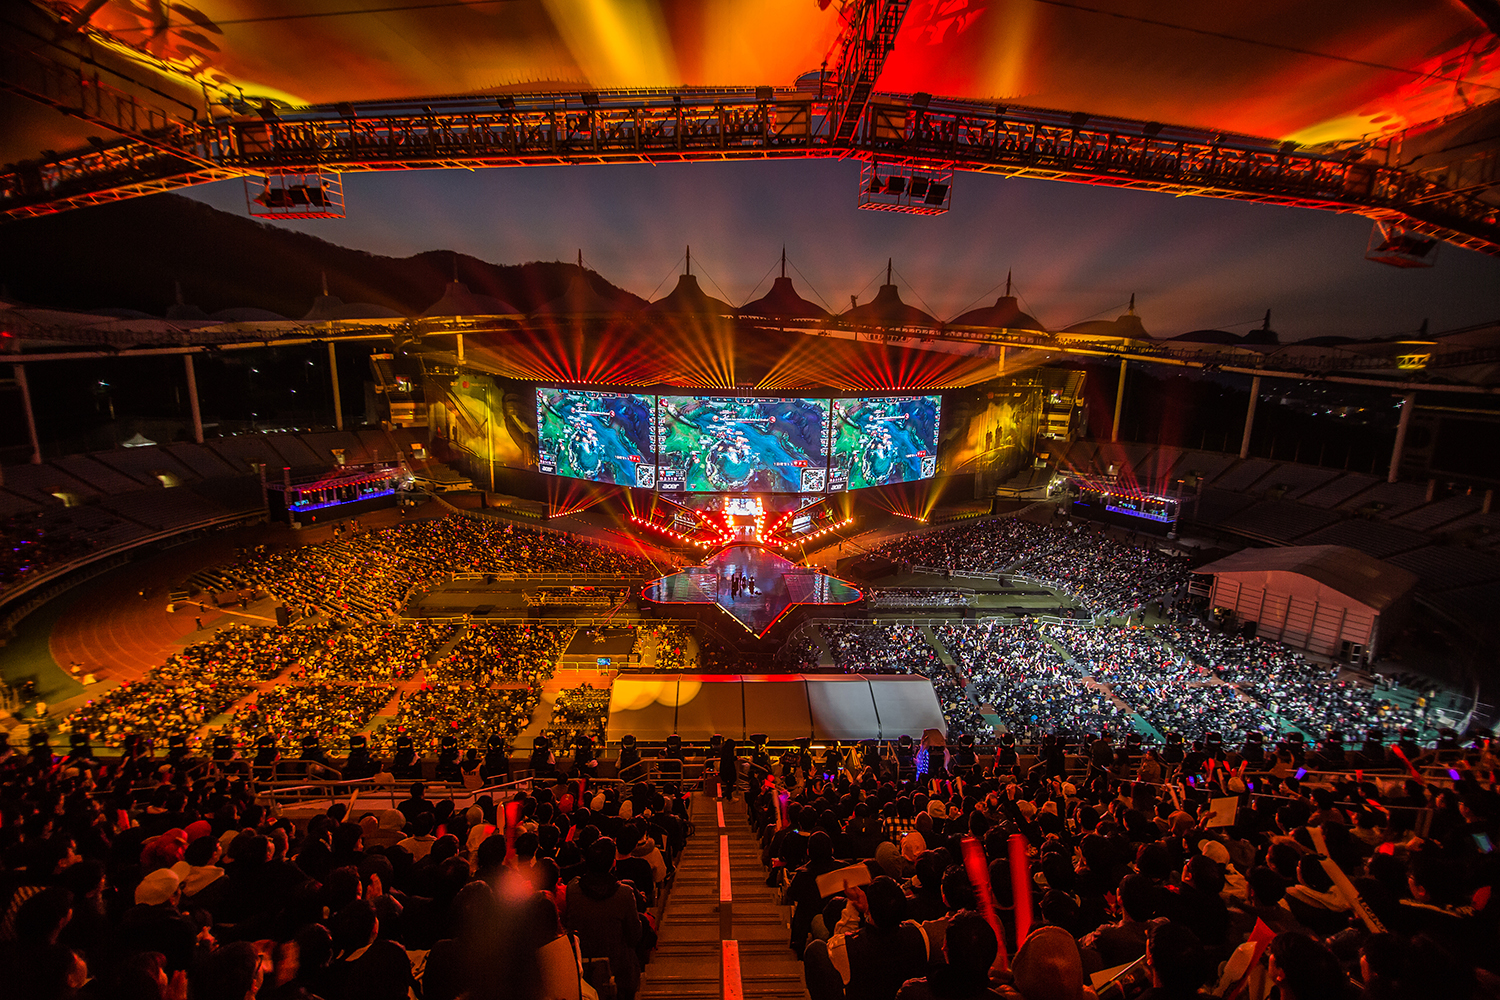 League of Legends fans watching the 2018 League of Legends World Championship Finals sponsored by Mastercard on November 3, 2018 in Incheon, South Korea. Photo by Hannah Smith/ESPAT Media for Mastercard